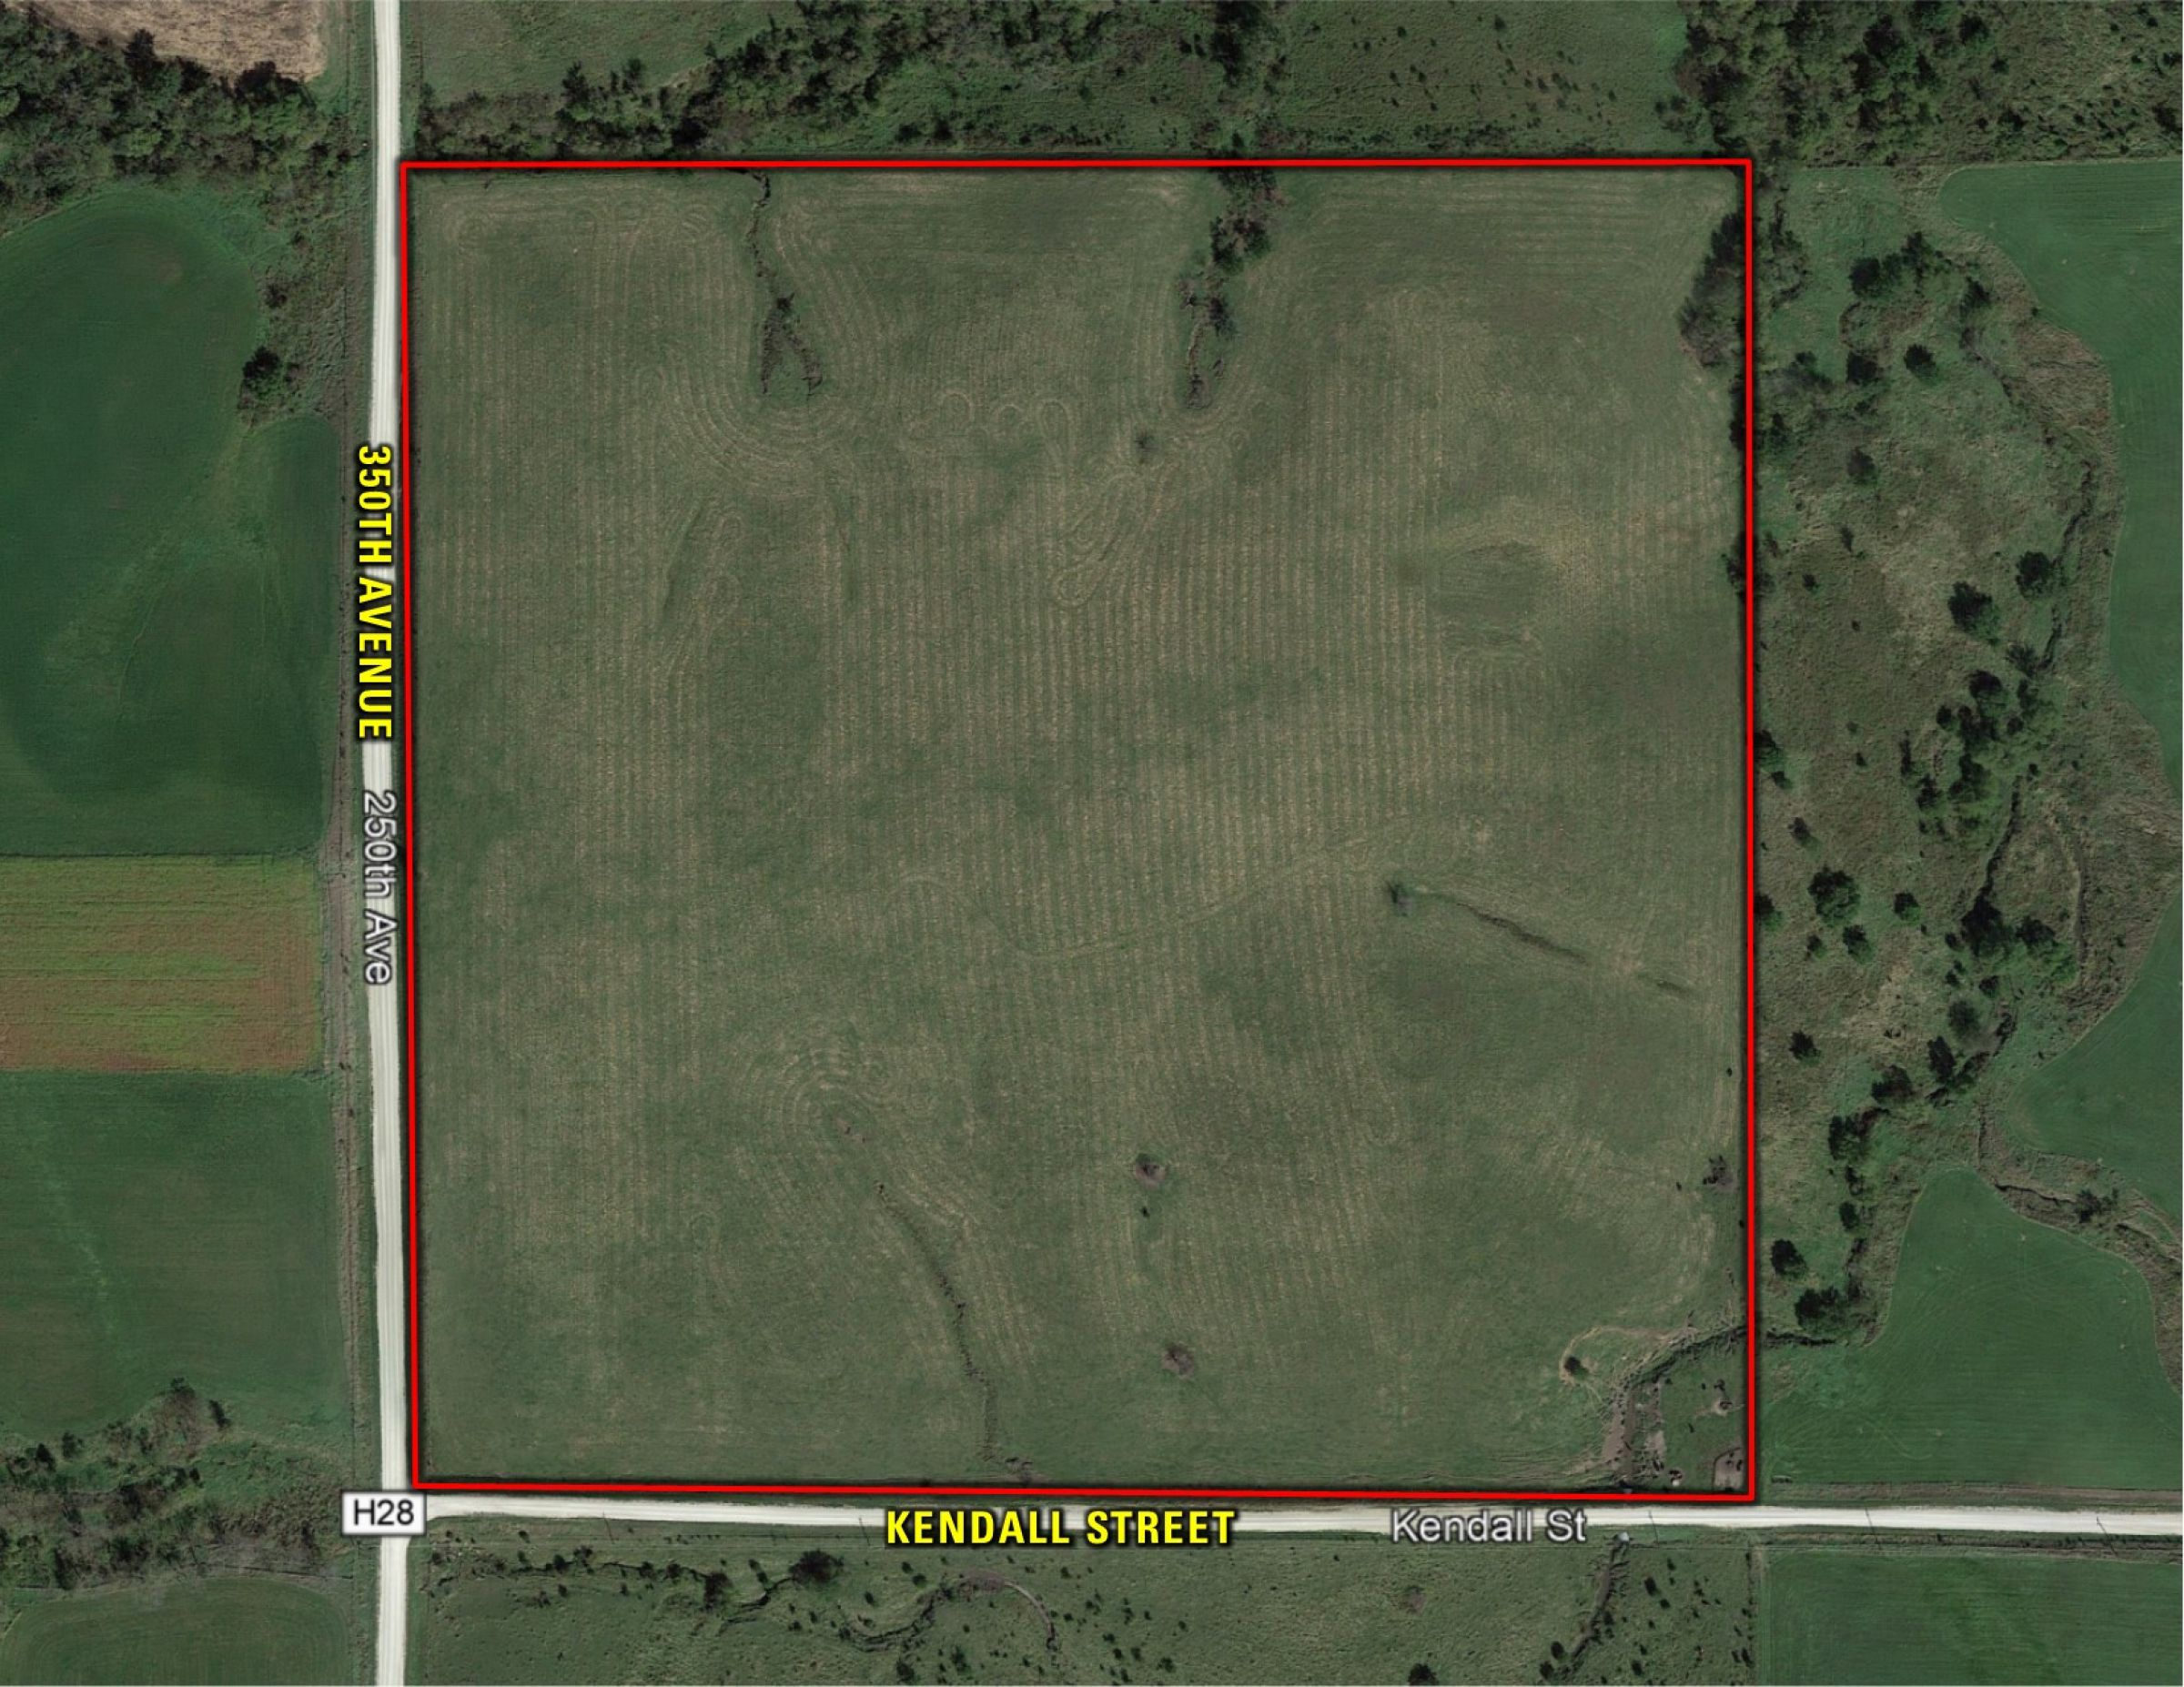 Peoples Company Land for Sale - Auction - Kendall St. Osceola, IA 50213